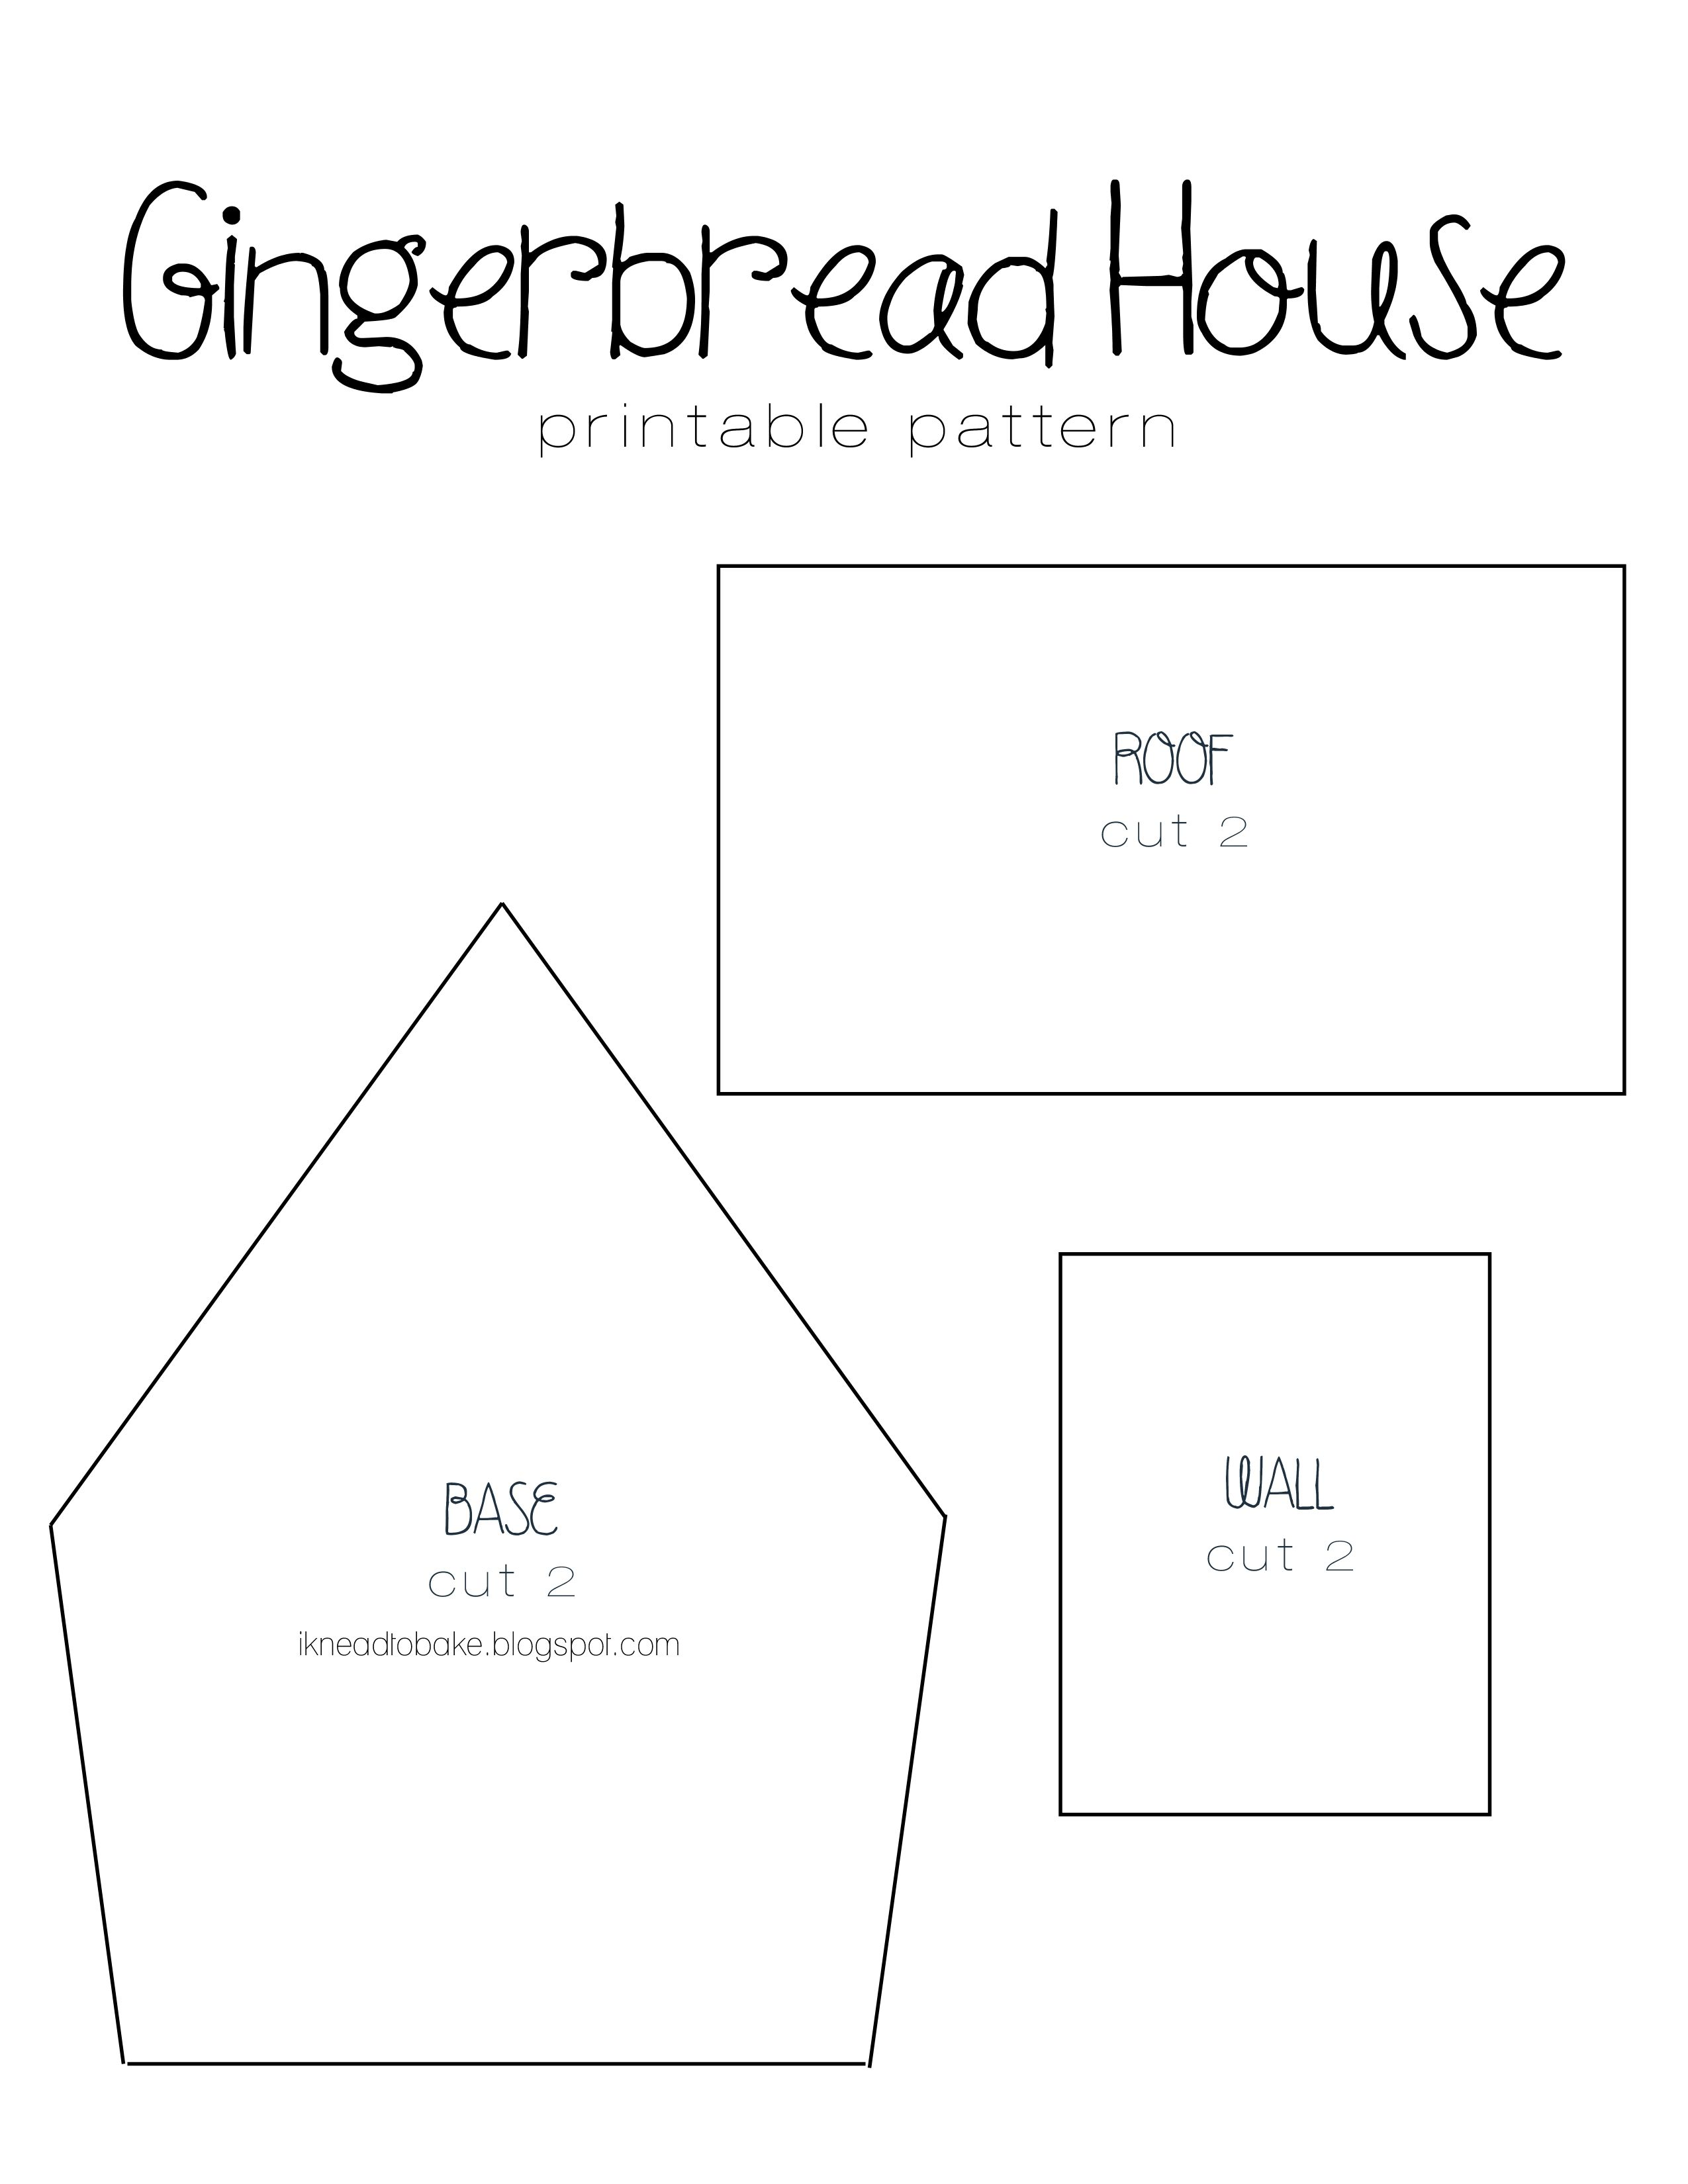 Gingerbread house template | H O L I D A Y | Pinterest ...